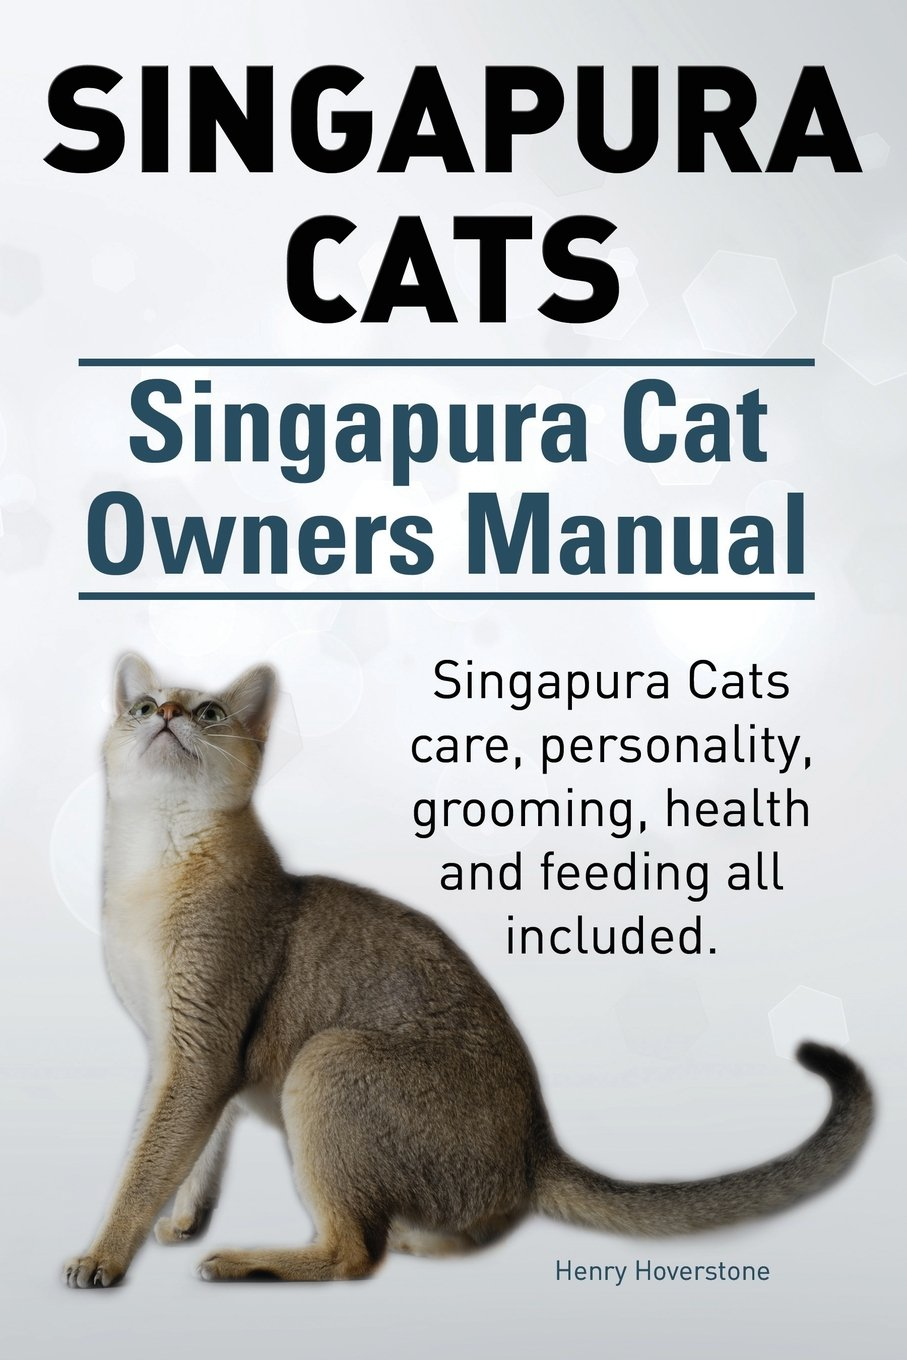 Singapura Cat Owners Manual. Singapura Cats care, personality, grooming,  health and feeding all included.: Henry Hoverstone: 9781910617311:  Amazon.com: ...